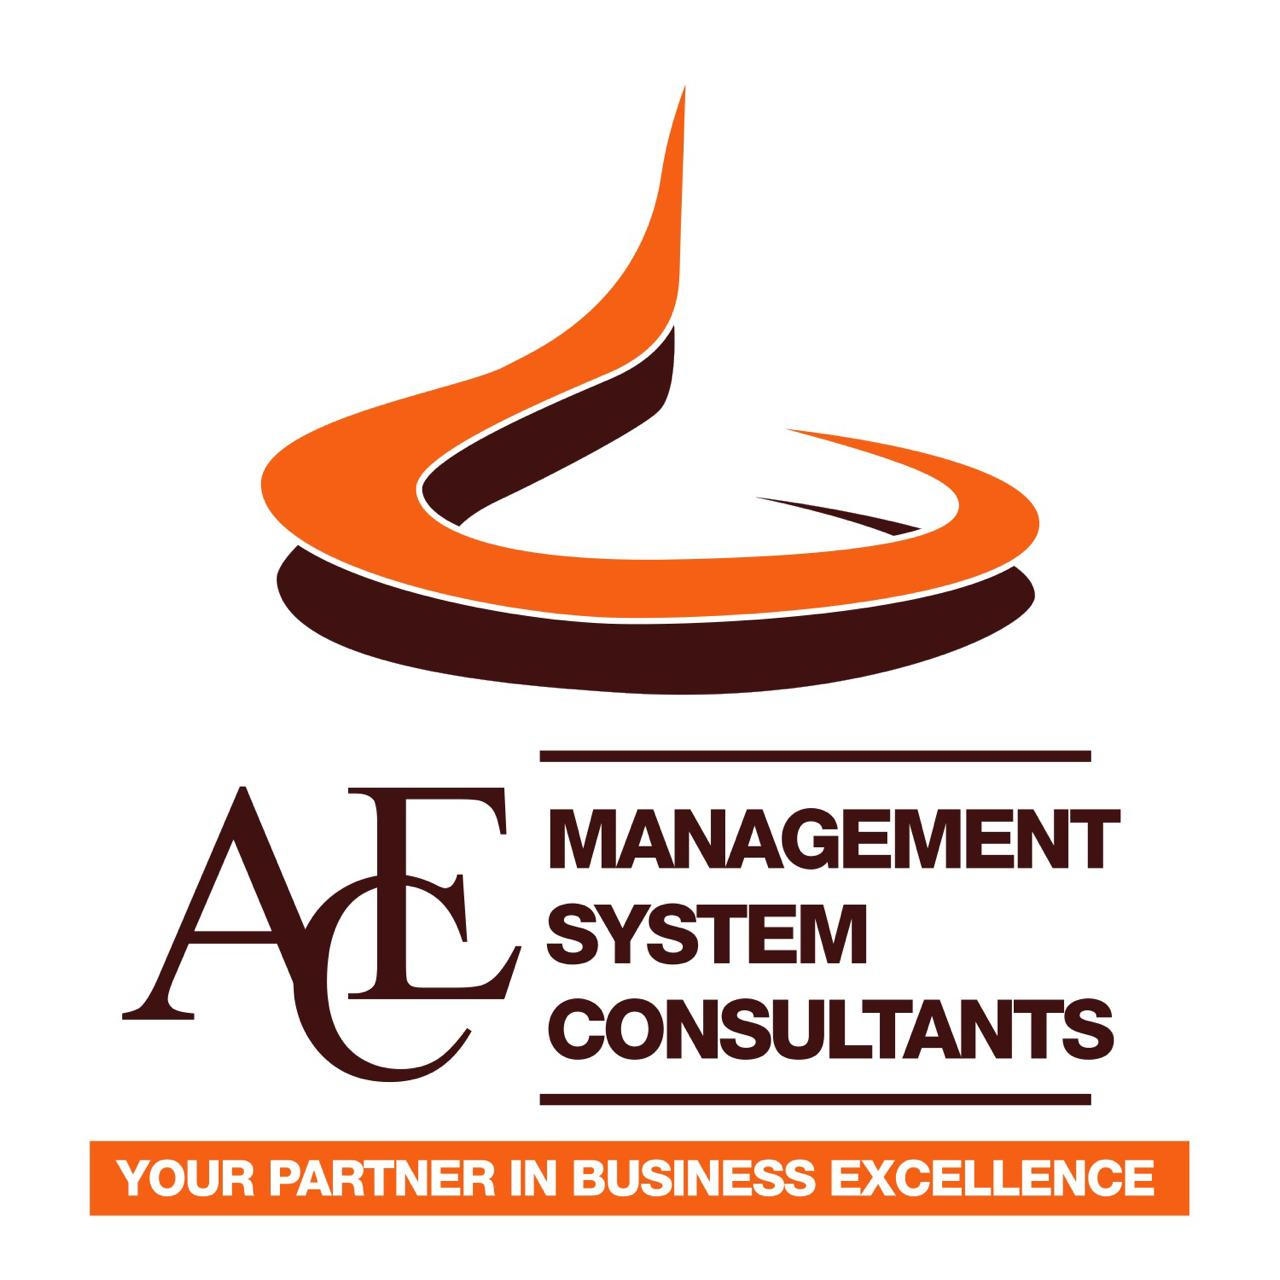 Ace Management System Consultants